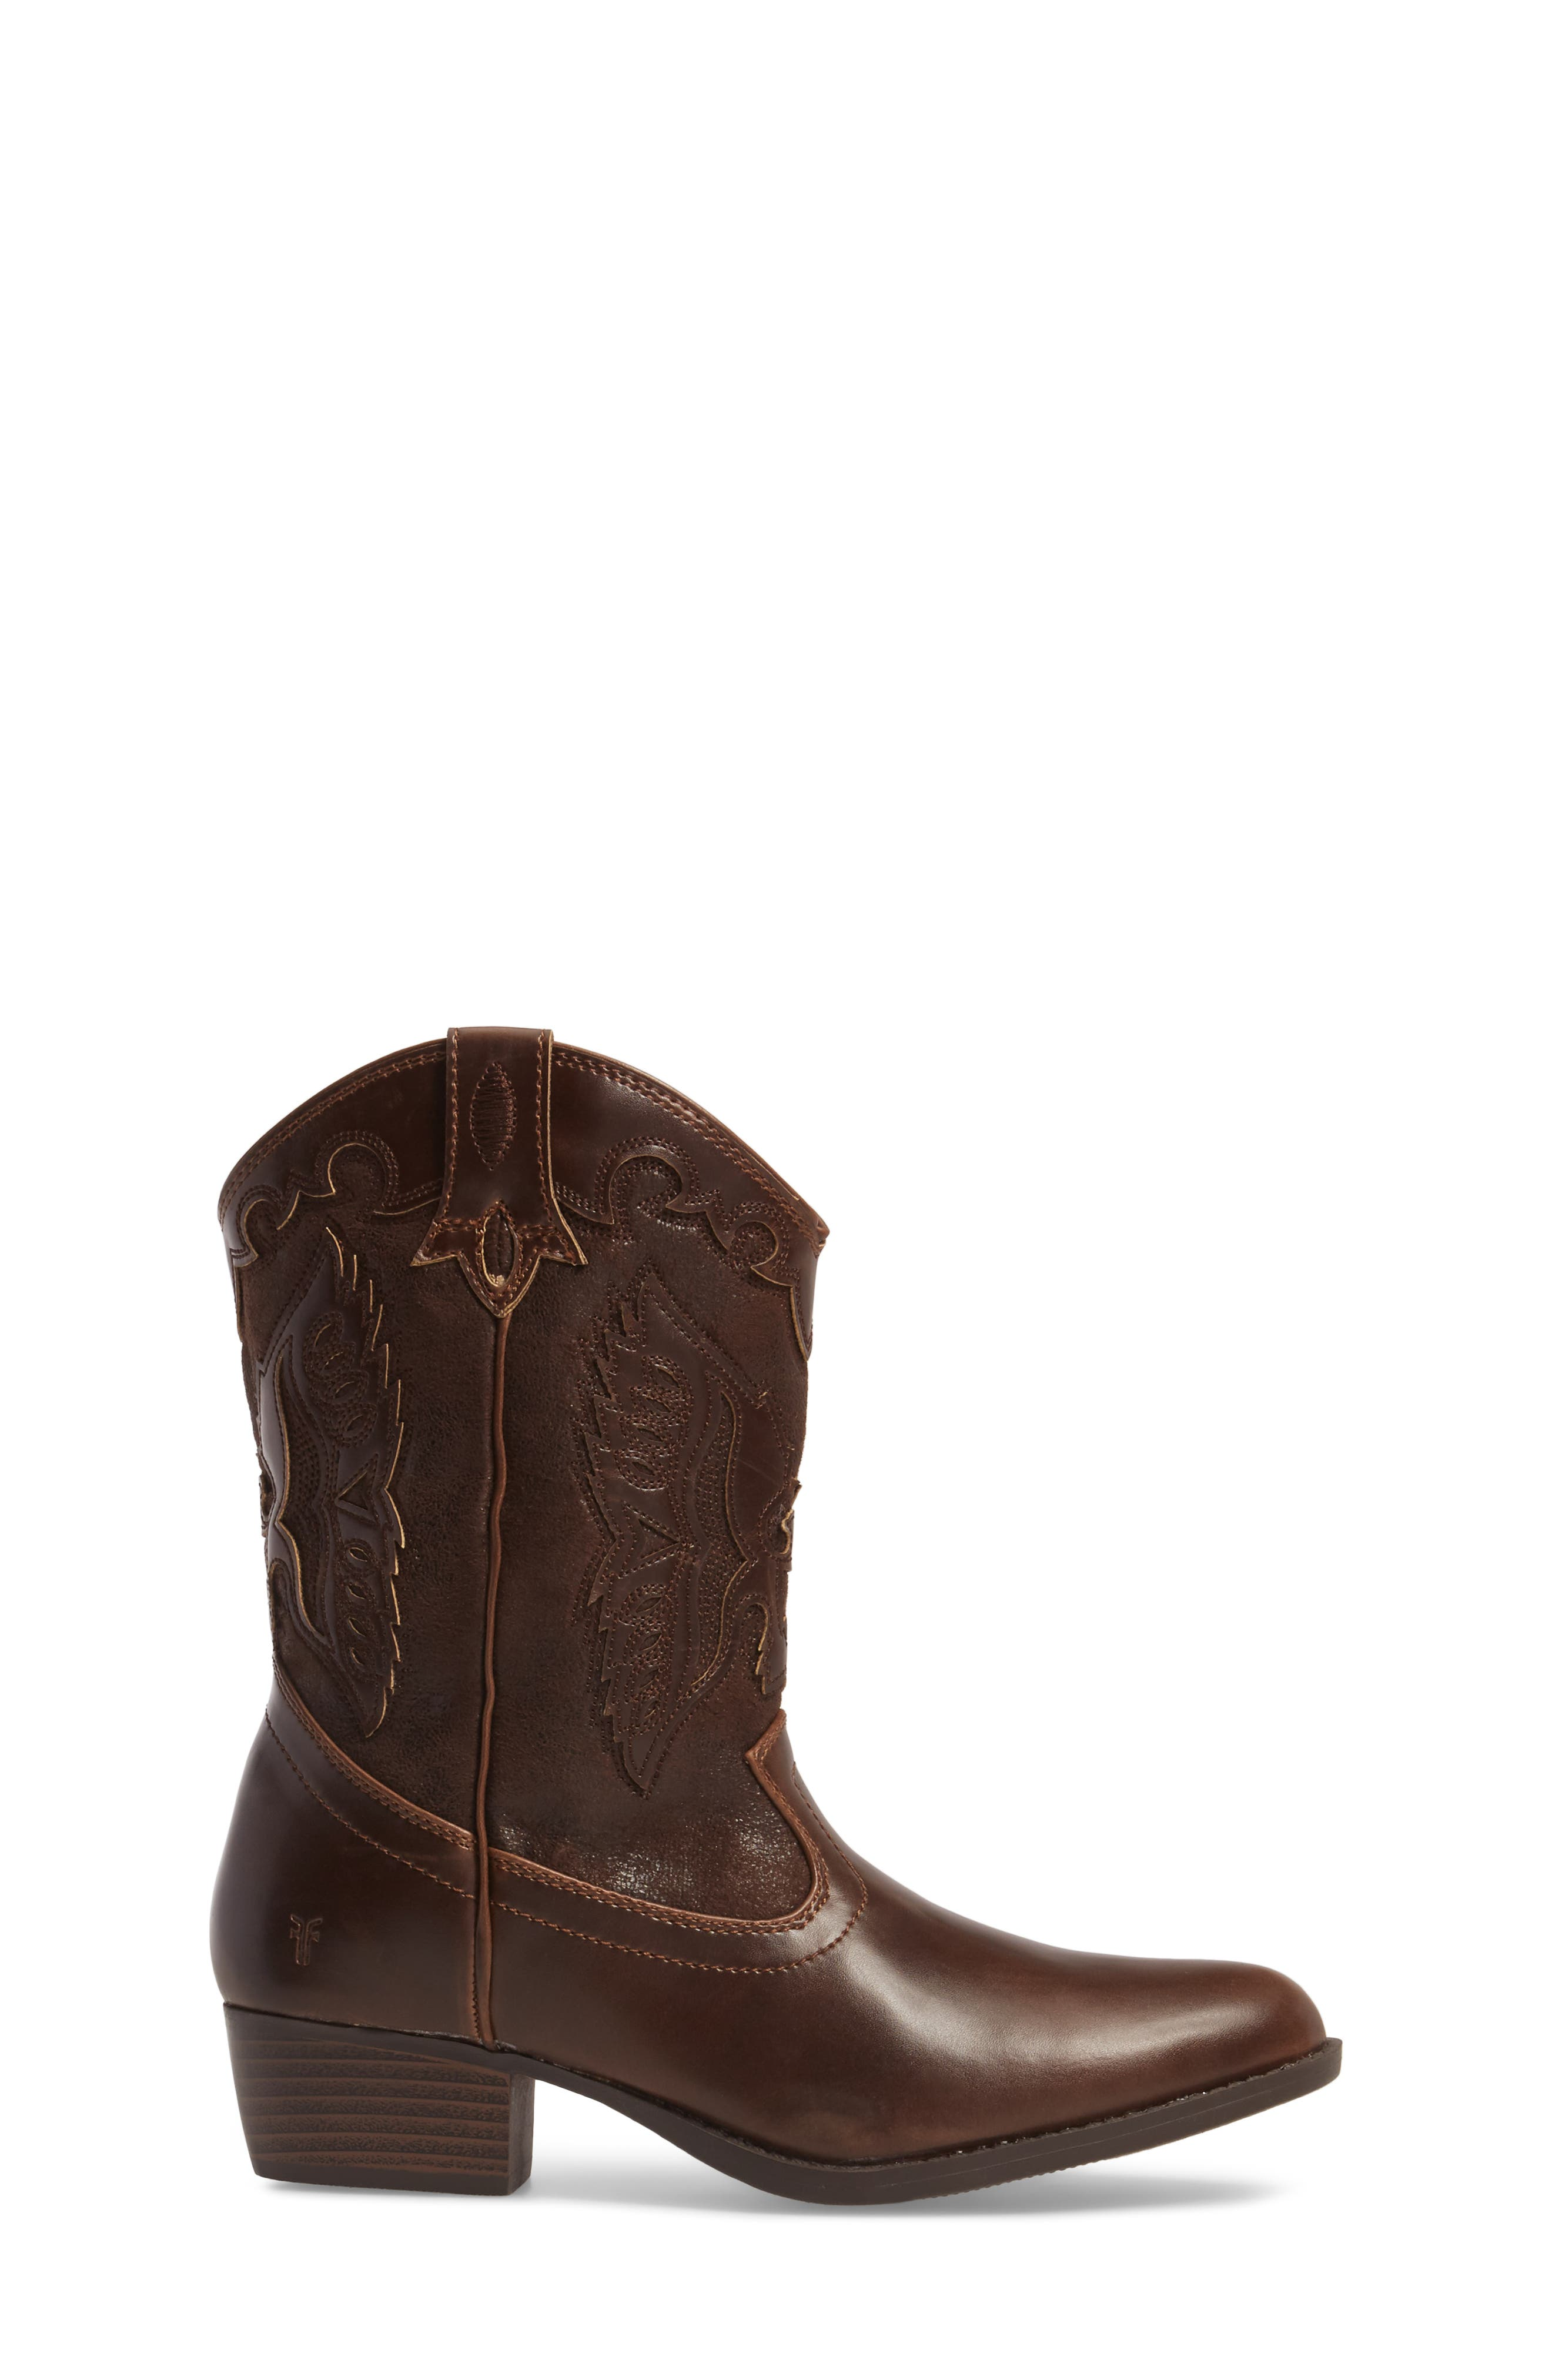 FRYE, Carson Firebird Cowgirl Boot, Alternate thumbnail 3, color, BROWN